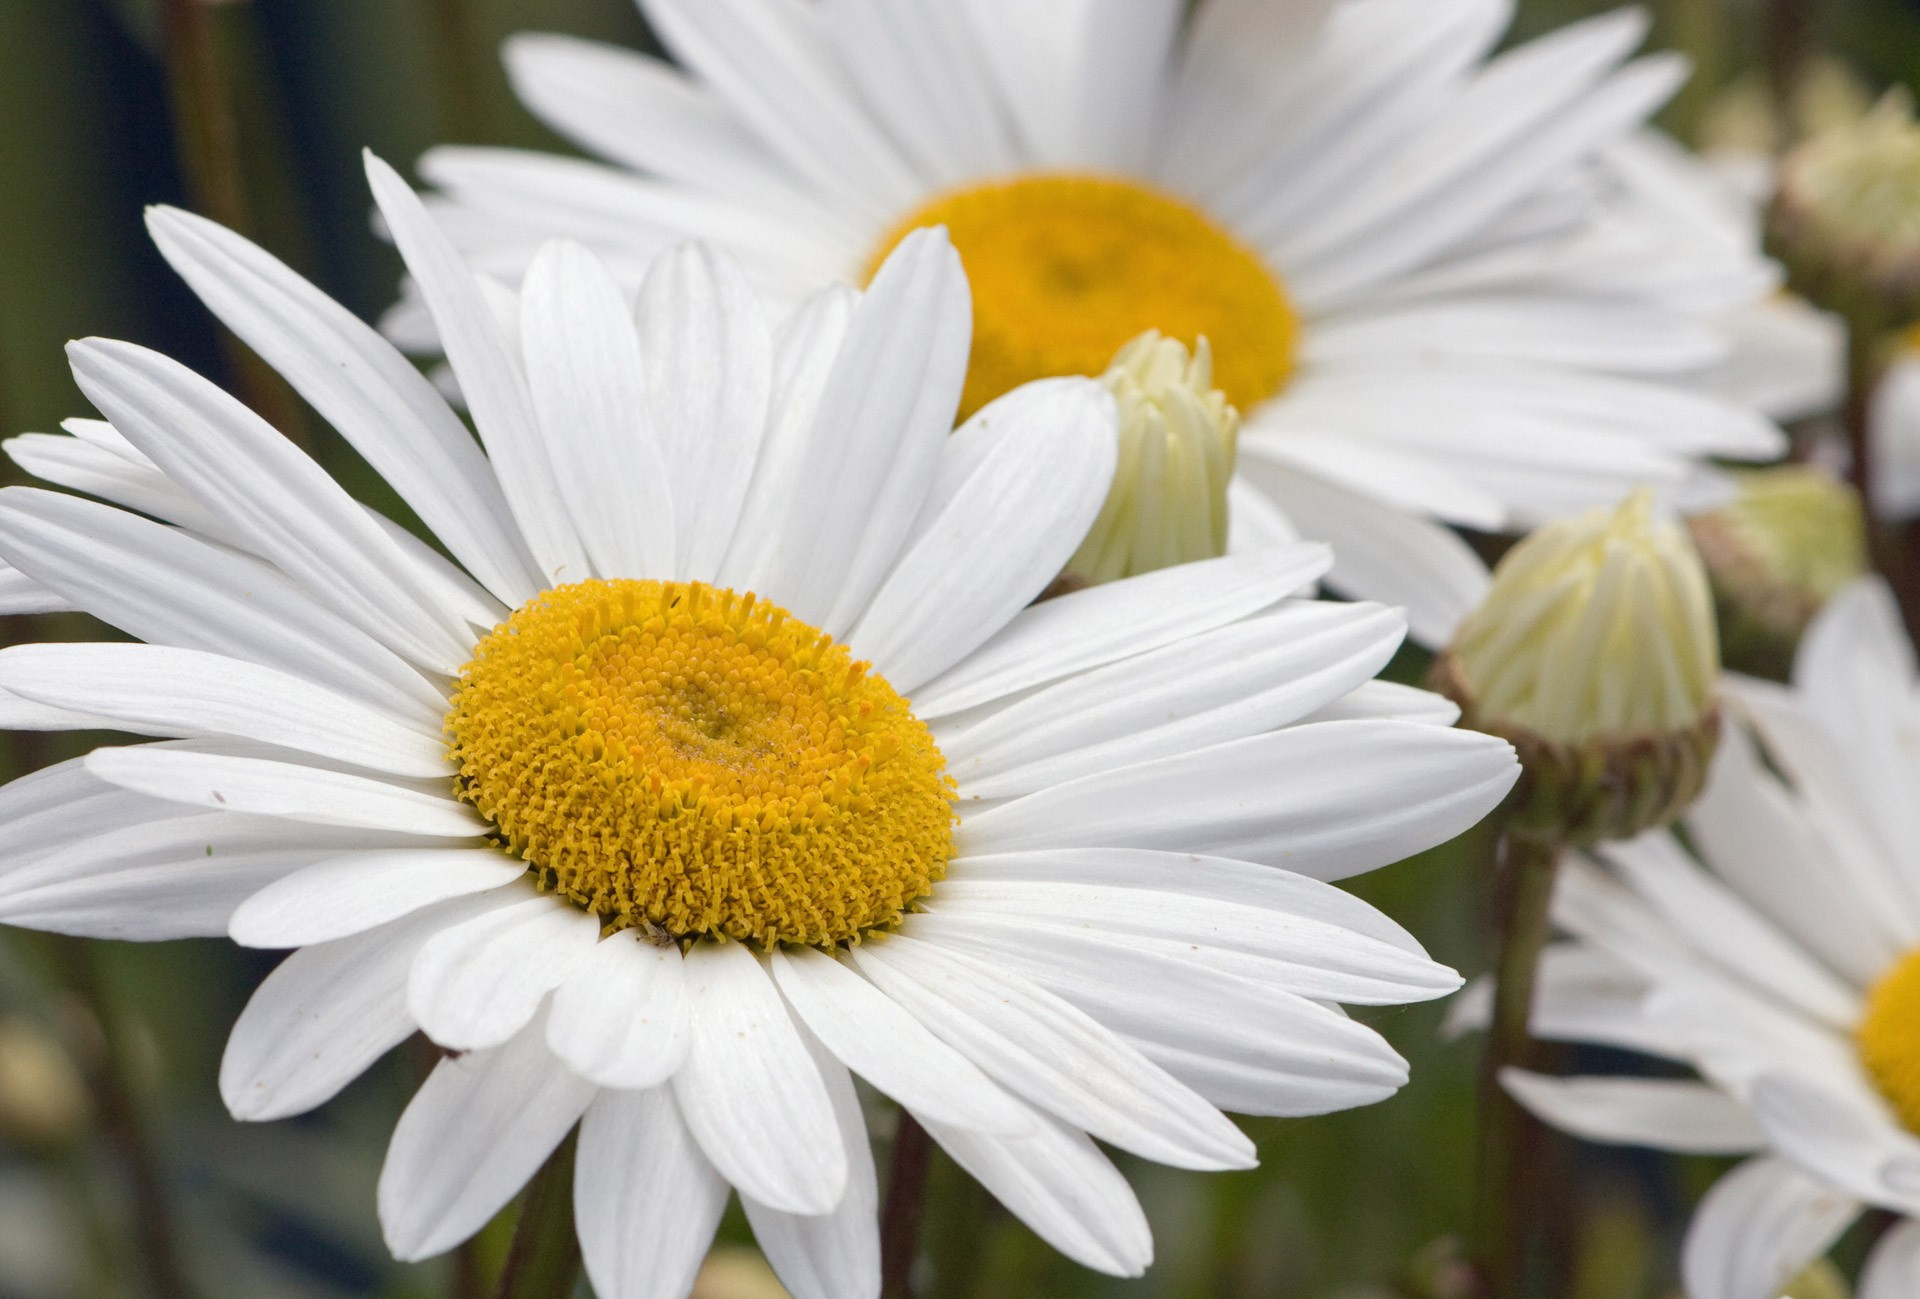 Free photo flowers center macro flower free download jooinn flowers nature flowers yellow white flower daisy center petals mightylinksfo